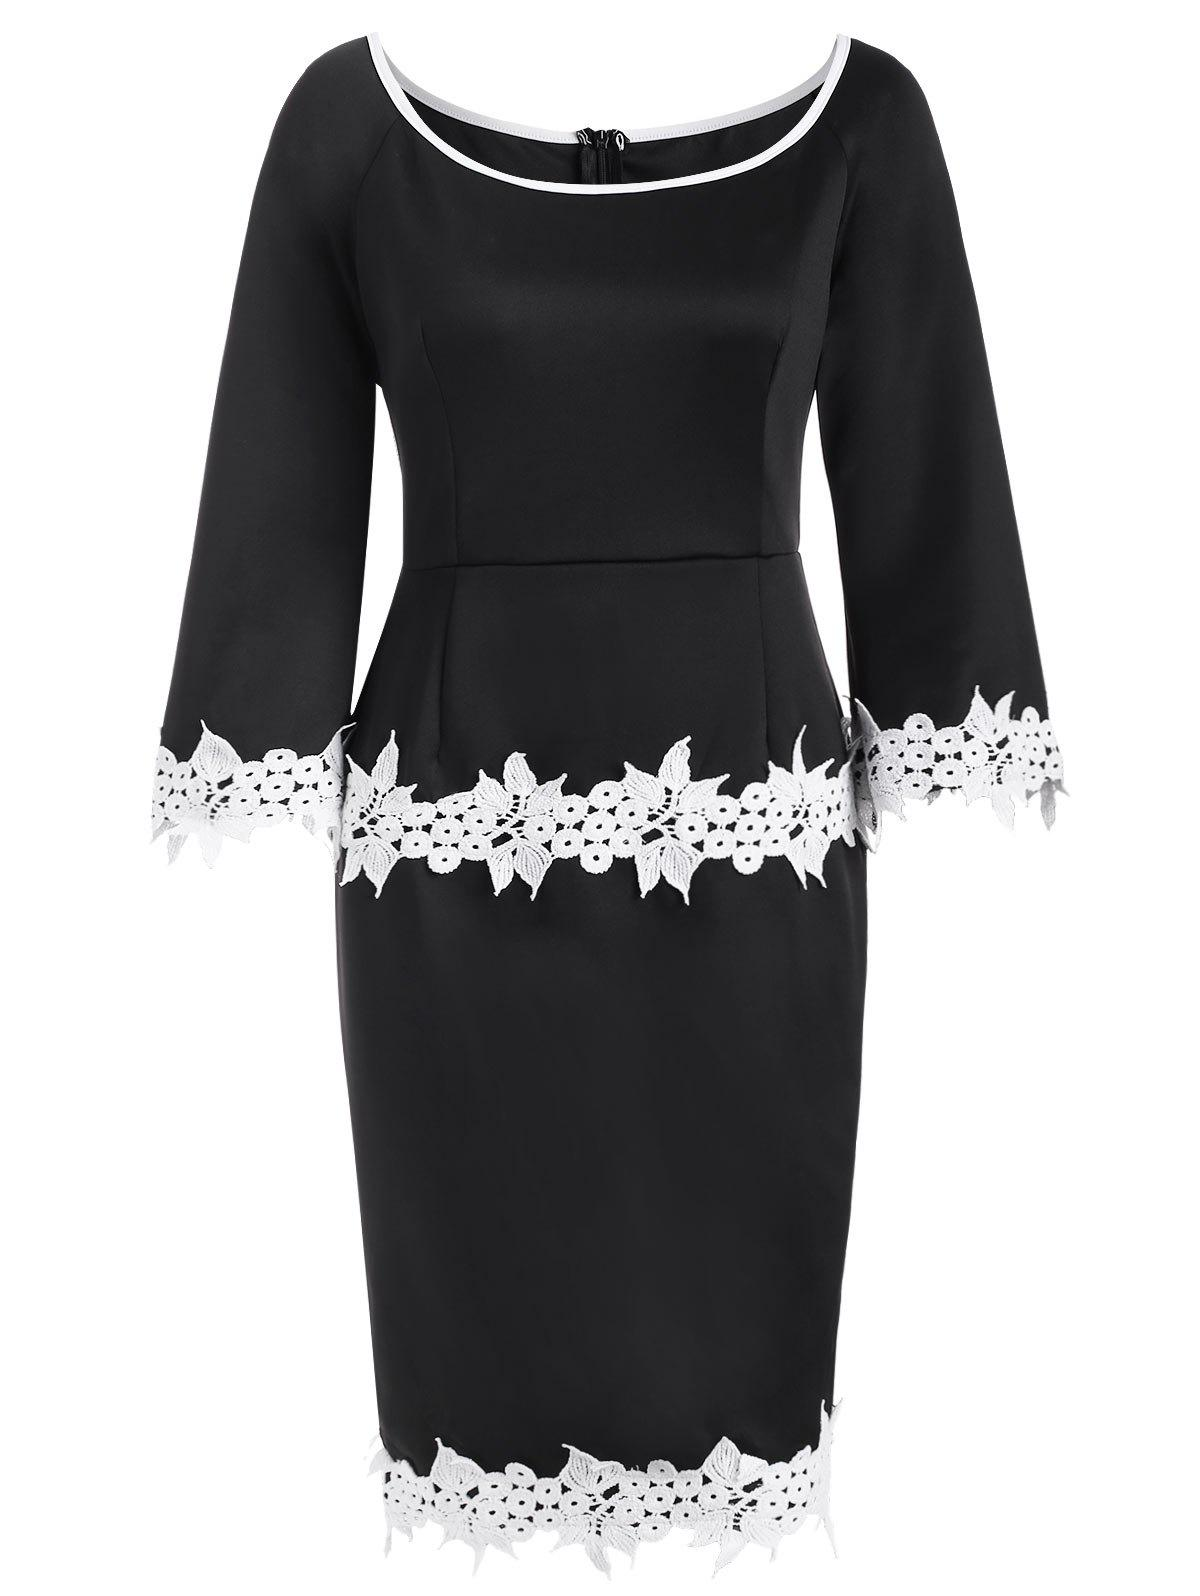 Scoop Neck Lace Trim Sheath Dress - BLACK XL